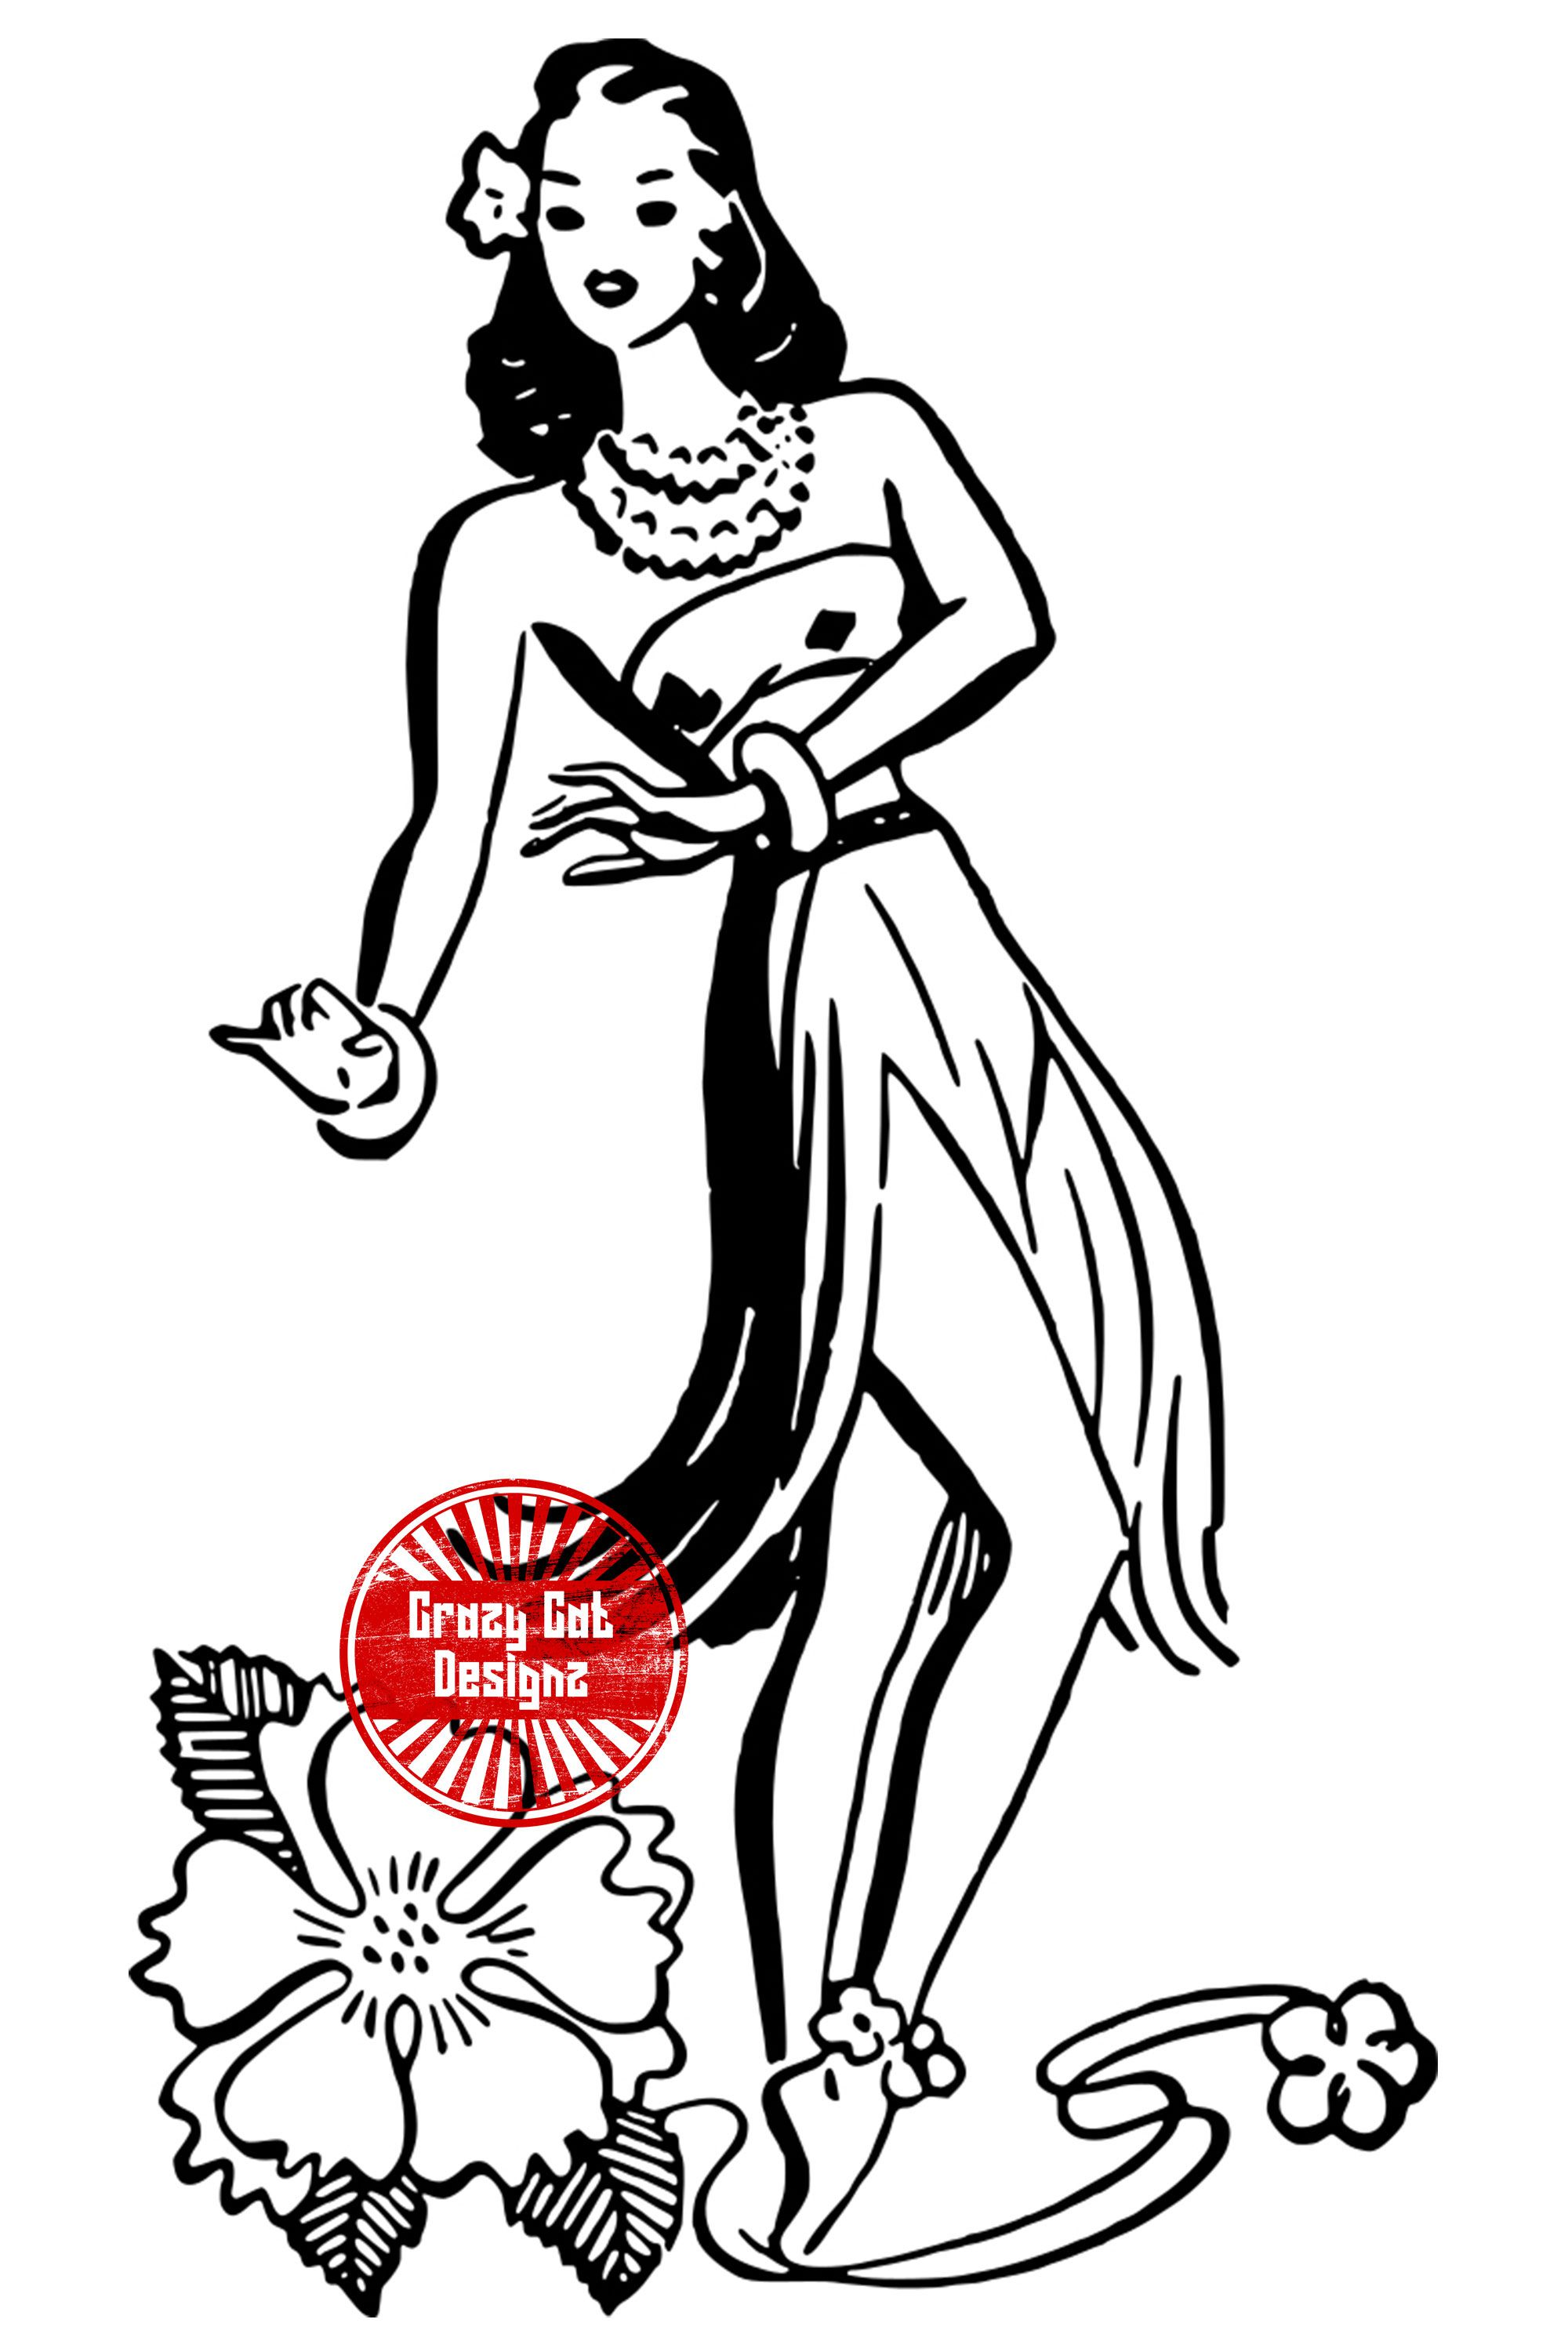 Hula Dancer Silhouette, SVG, PNG, JPG, Clipart, Vector